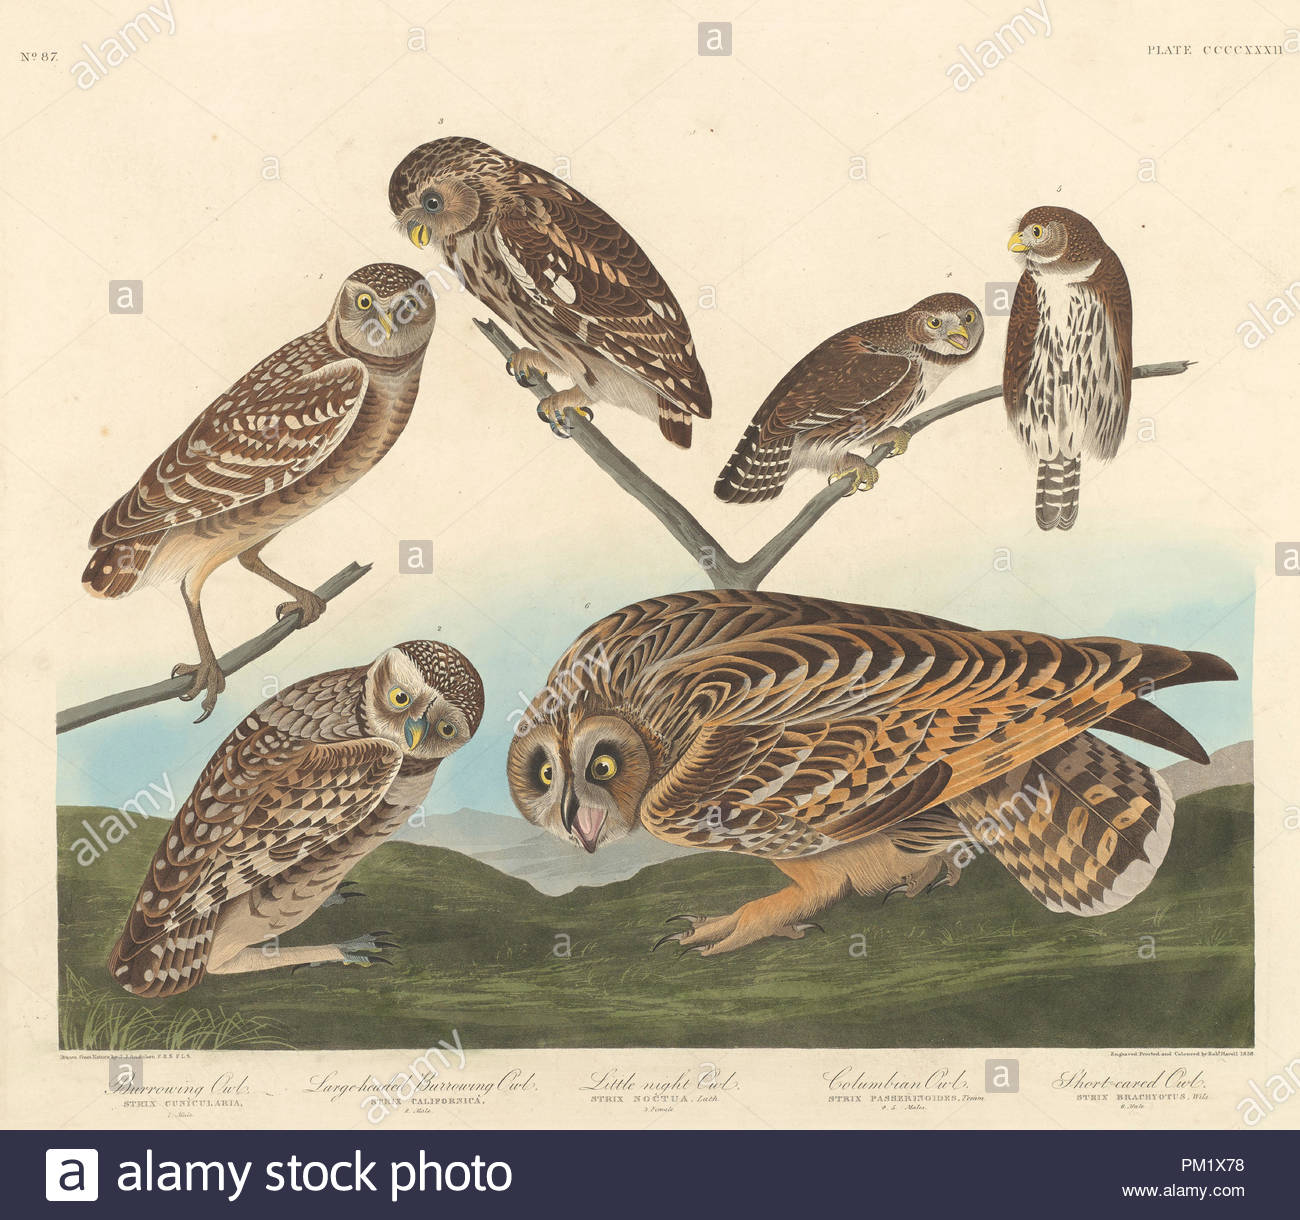 Grabende Eule, Large-Headed andLittle Graben OWL Night Owl. Stand: 1838. Medium: Handcolorierte Kupferstich und Aquatinta auf Whatman webte Papier. Museum: Nationalgalerie, Washington DC. Autor: Robert Havell nach John James Audubon. Stockbild